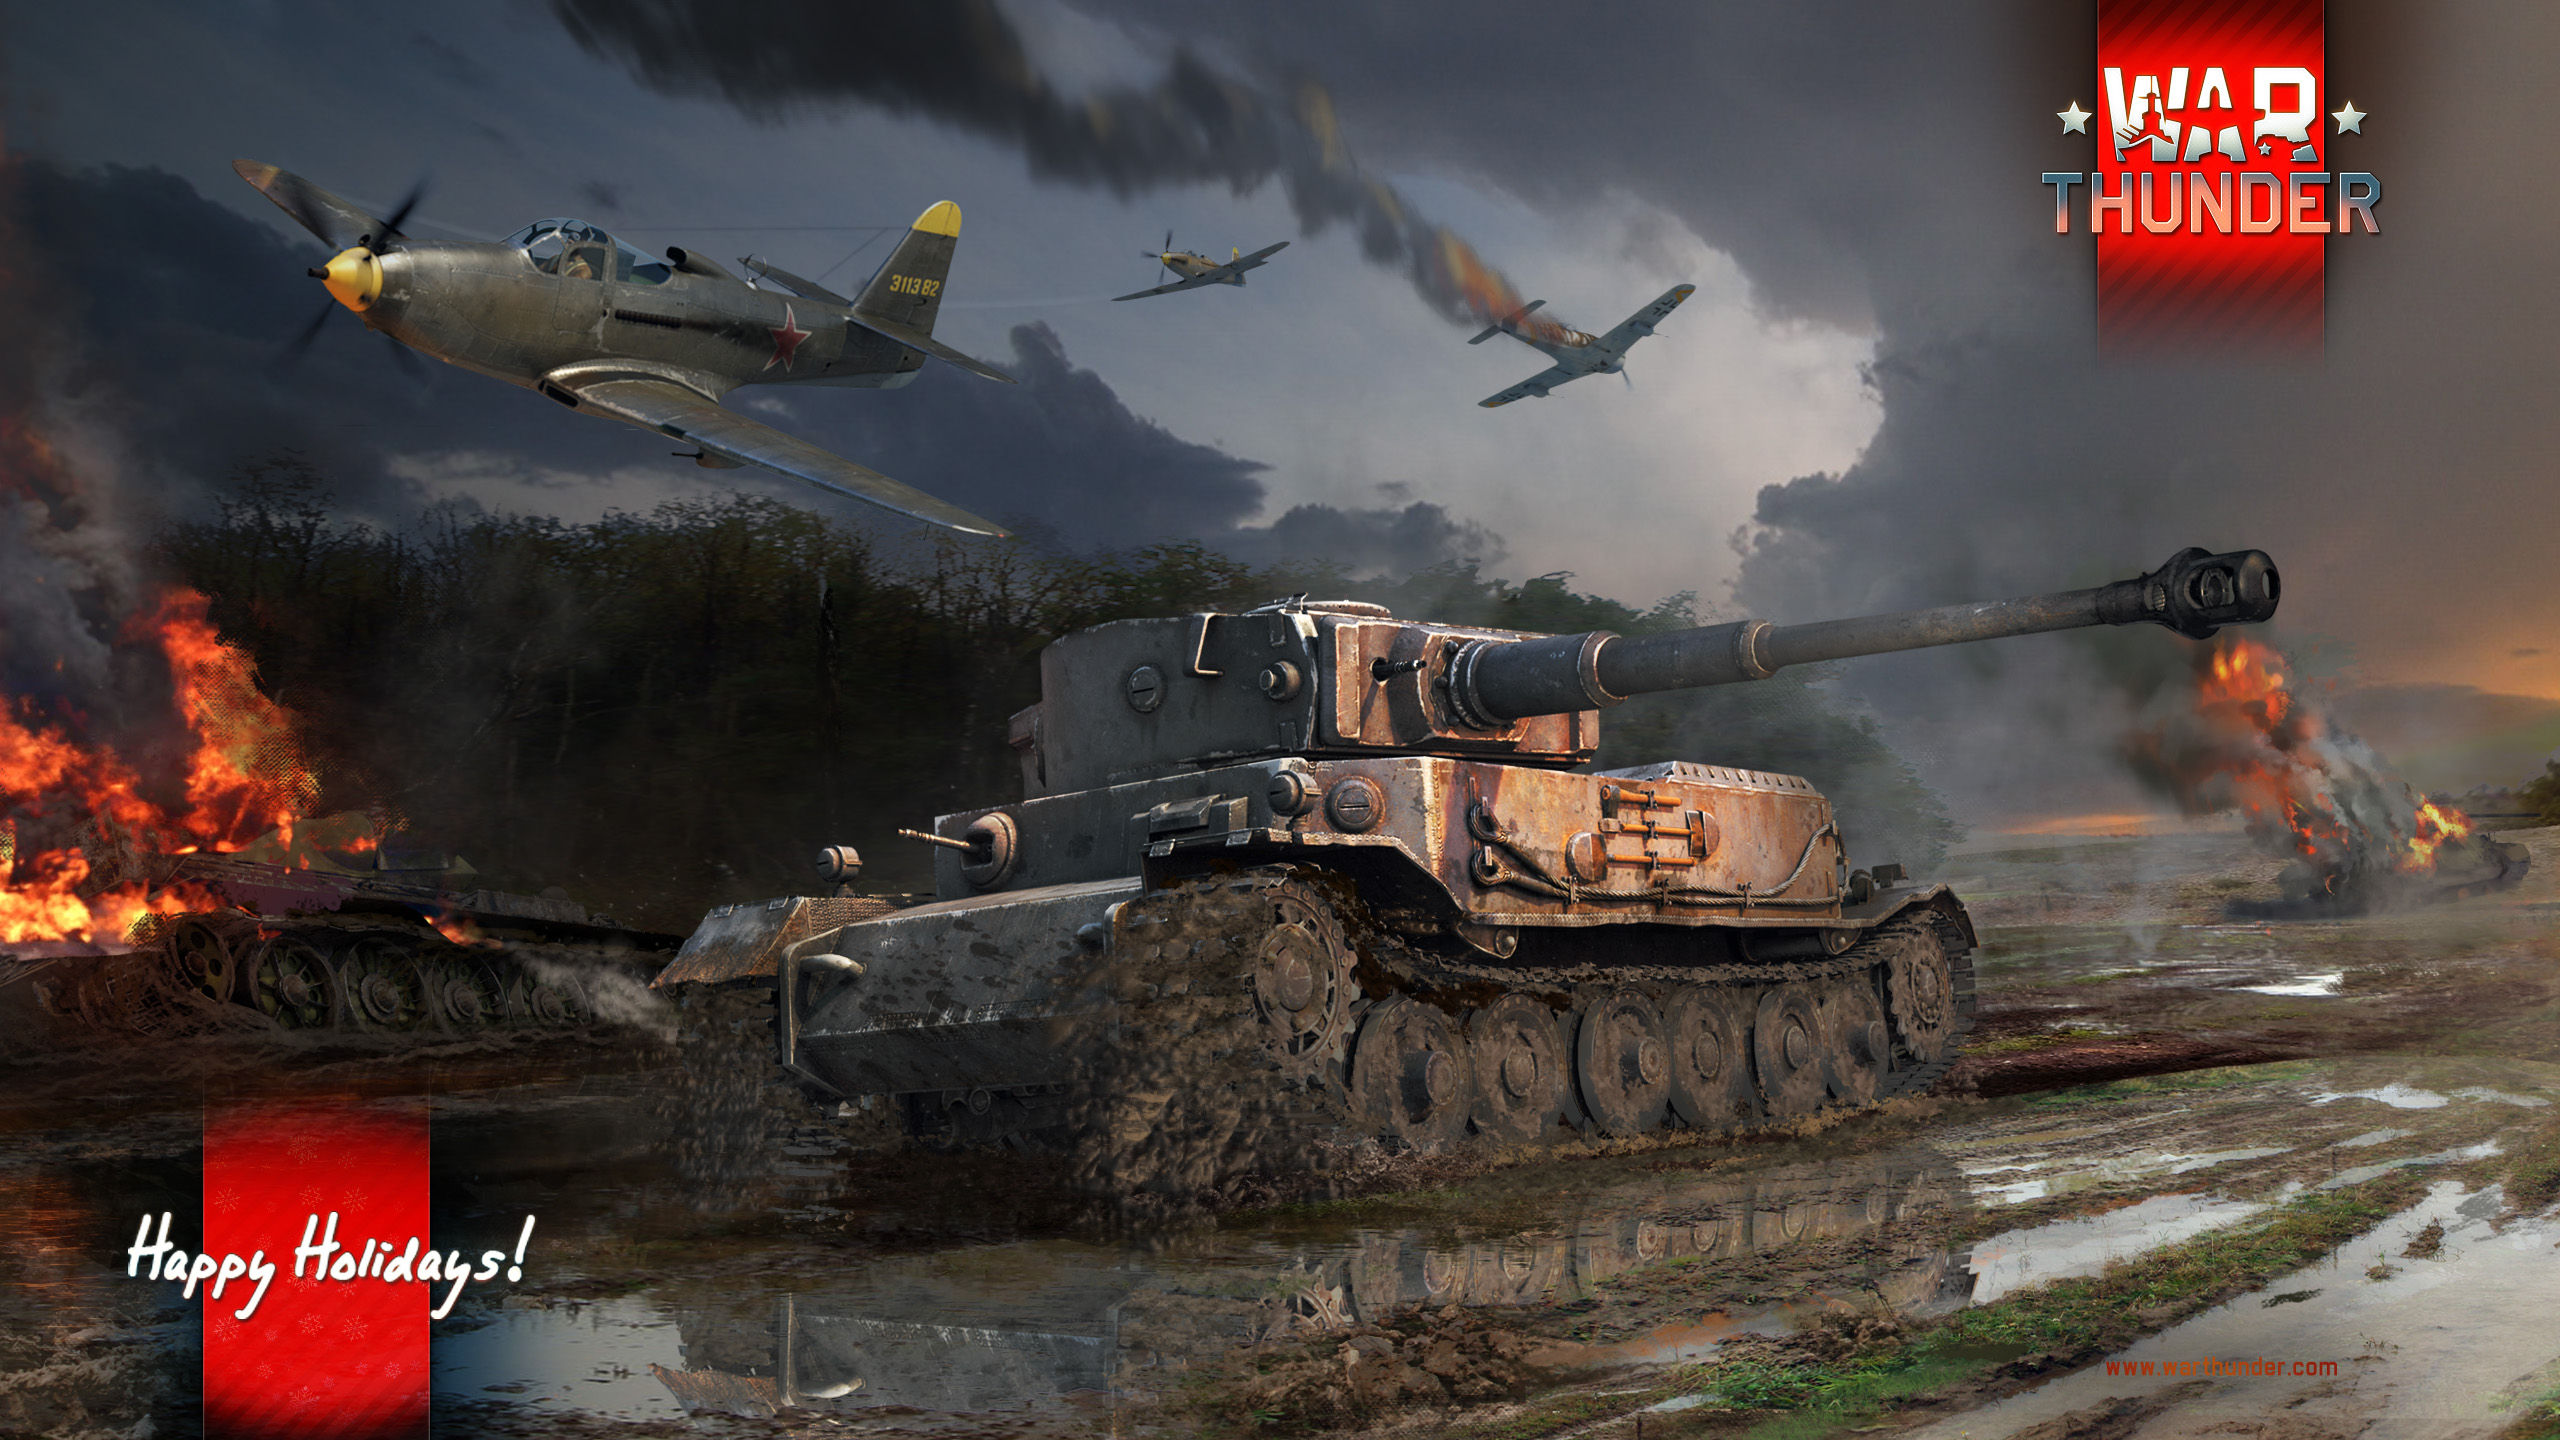 war thunder is finally out on ps4. Black Bedroom Furniture Sets. Home Design Ideas